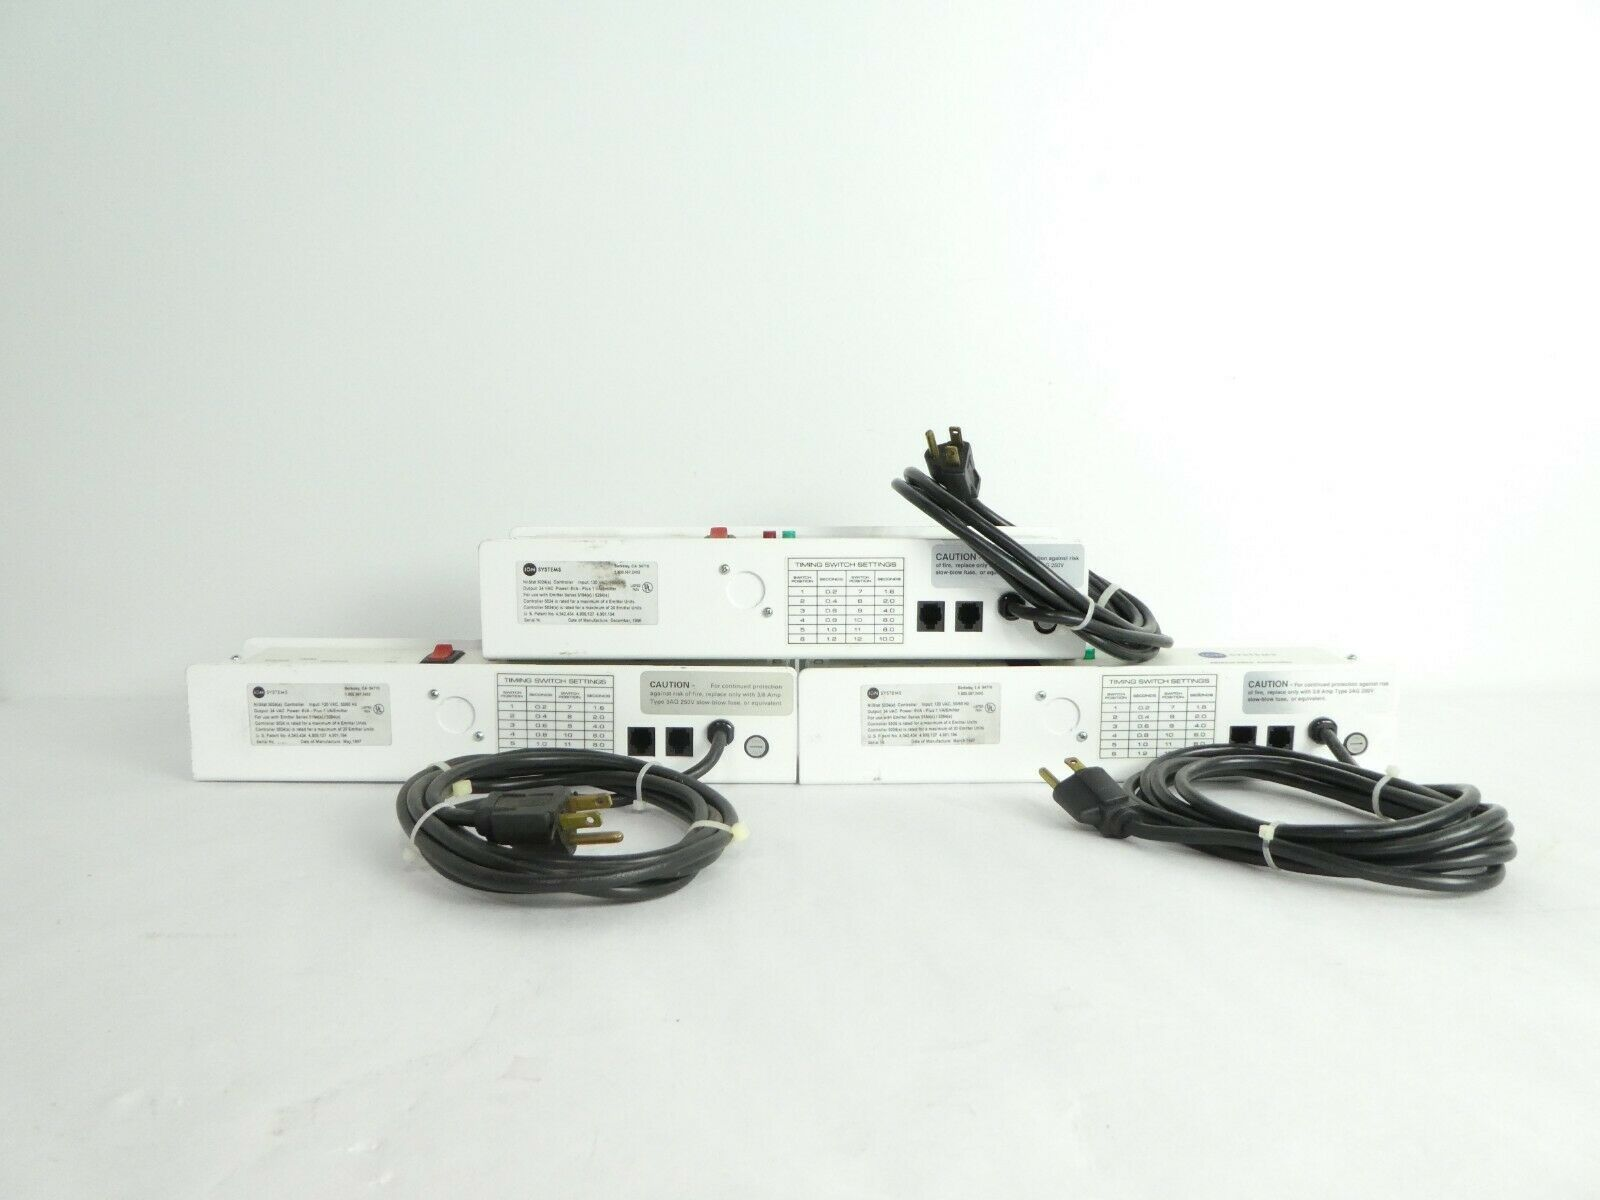 Ion Systems NilStat 5024(e) Controller Reseller Lot of 3 Used Working